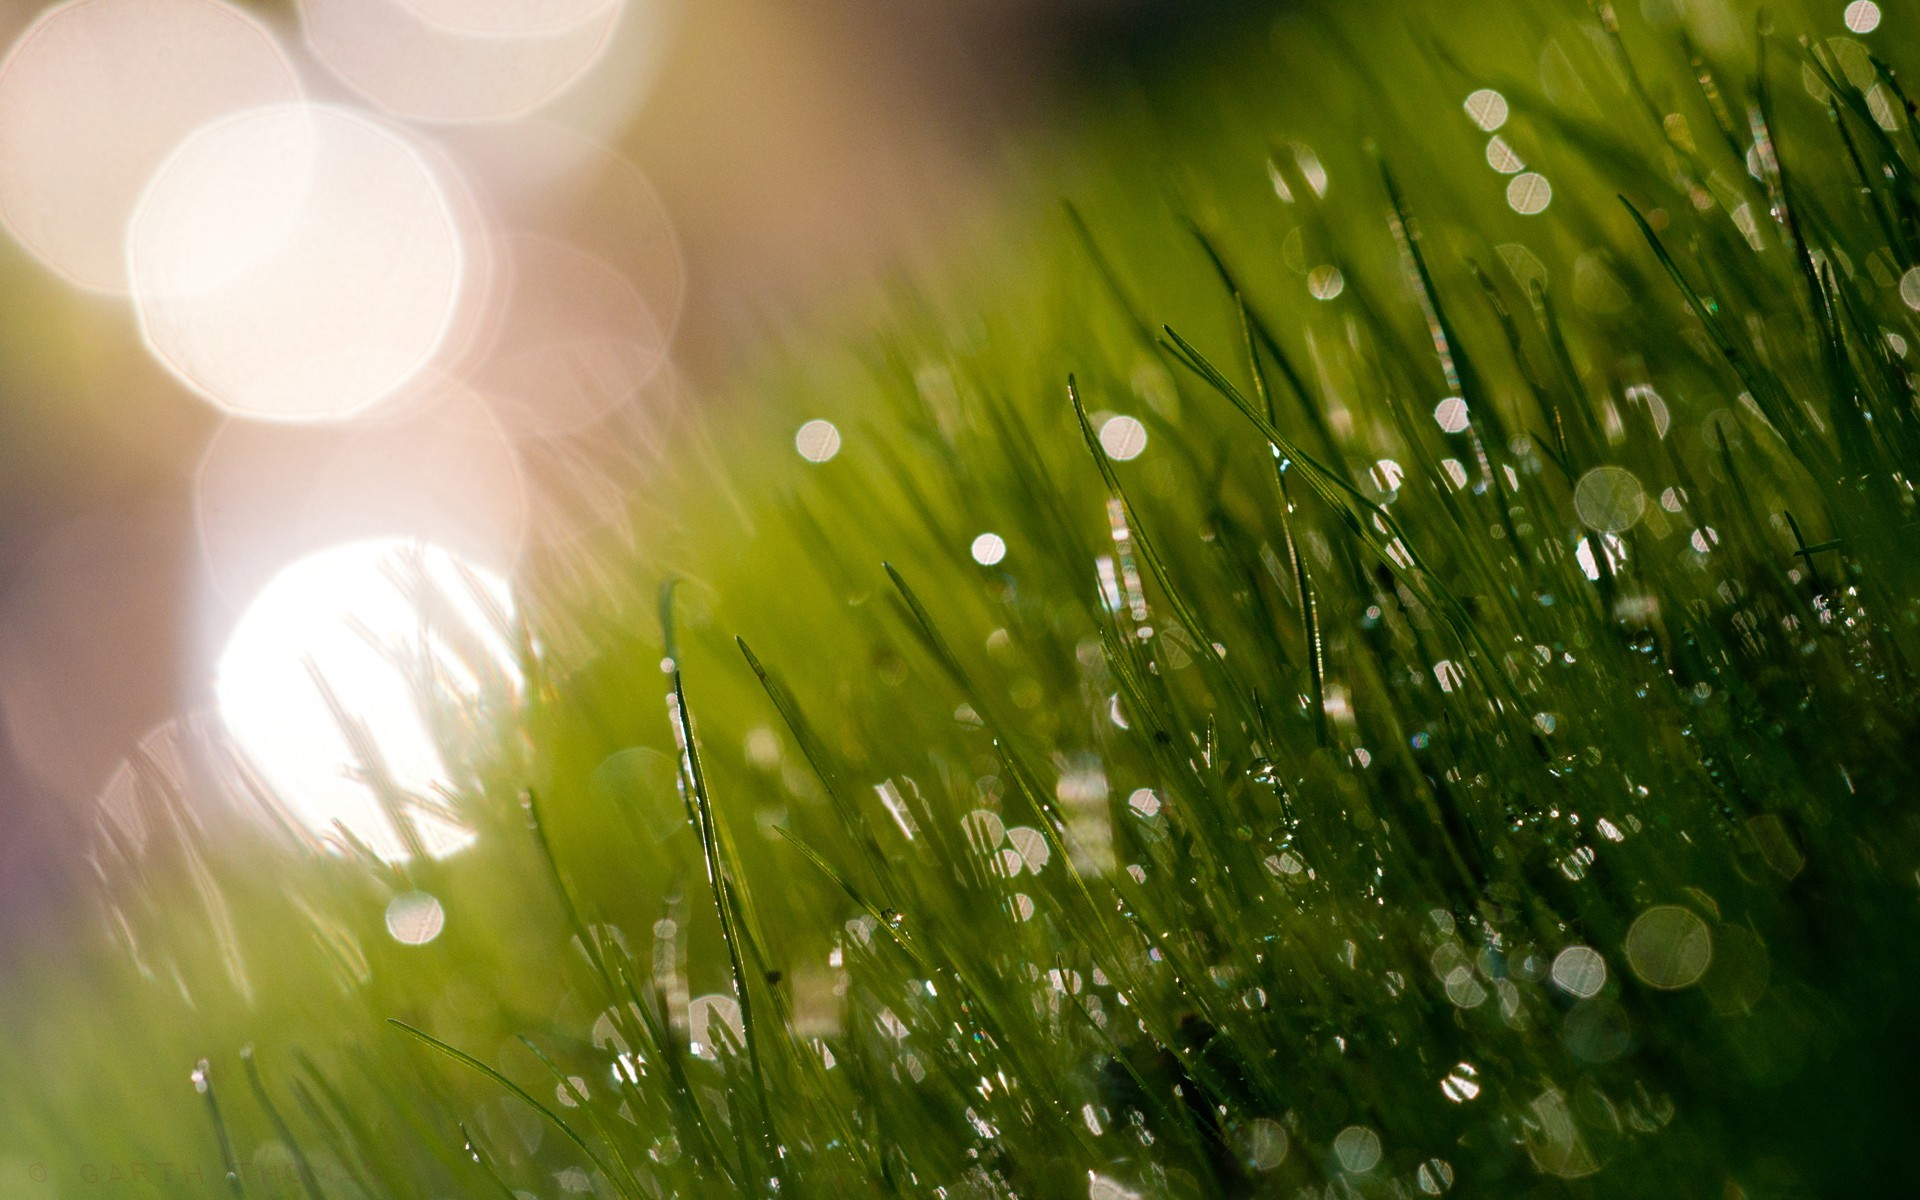 Drop Dew On The Grass Nature Background Stock Photo Image of